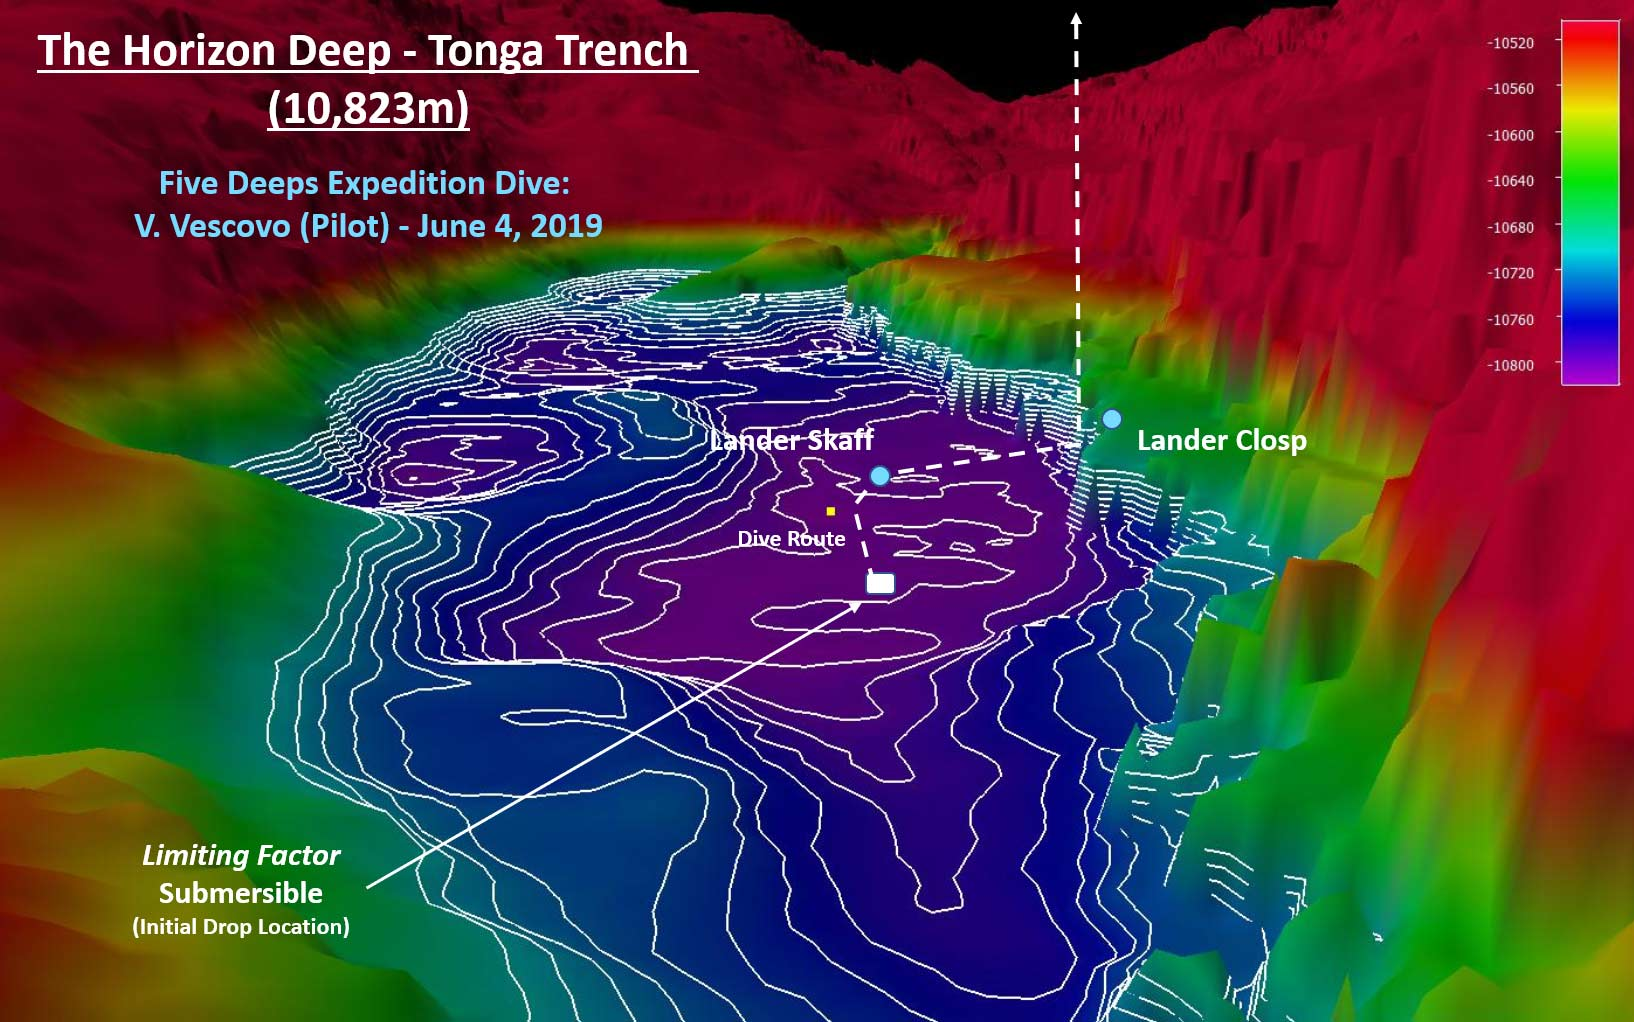 Five Deeps Expedition - Deepest Point in Tonga Trench Bathymetry 2019